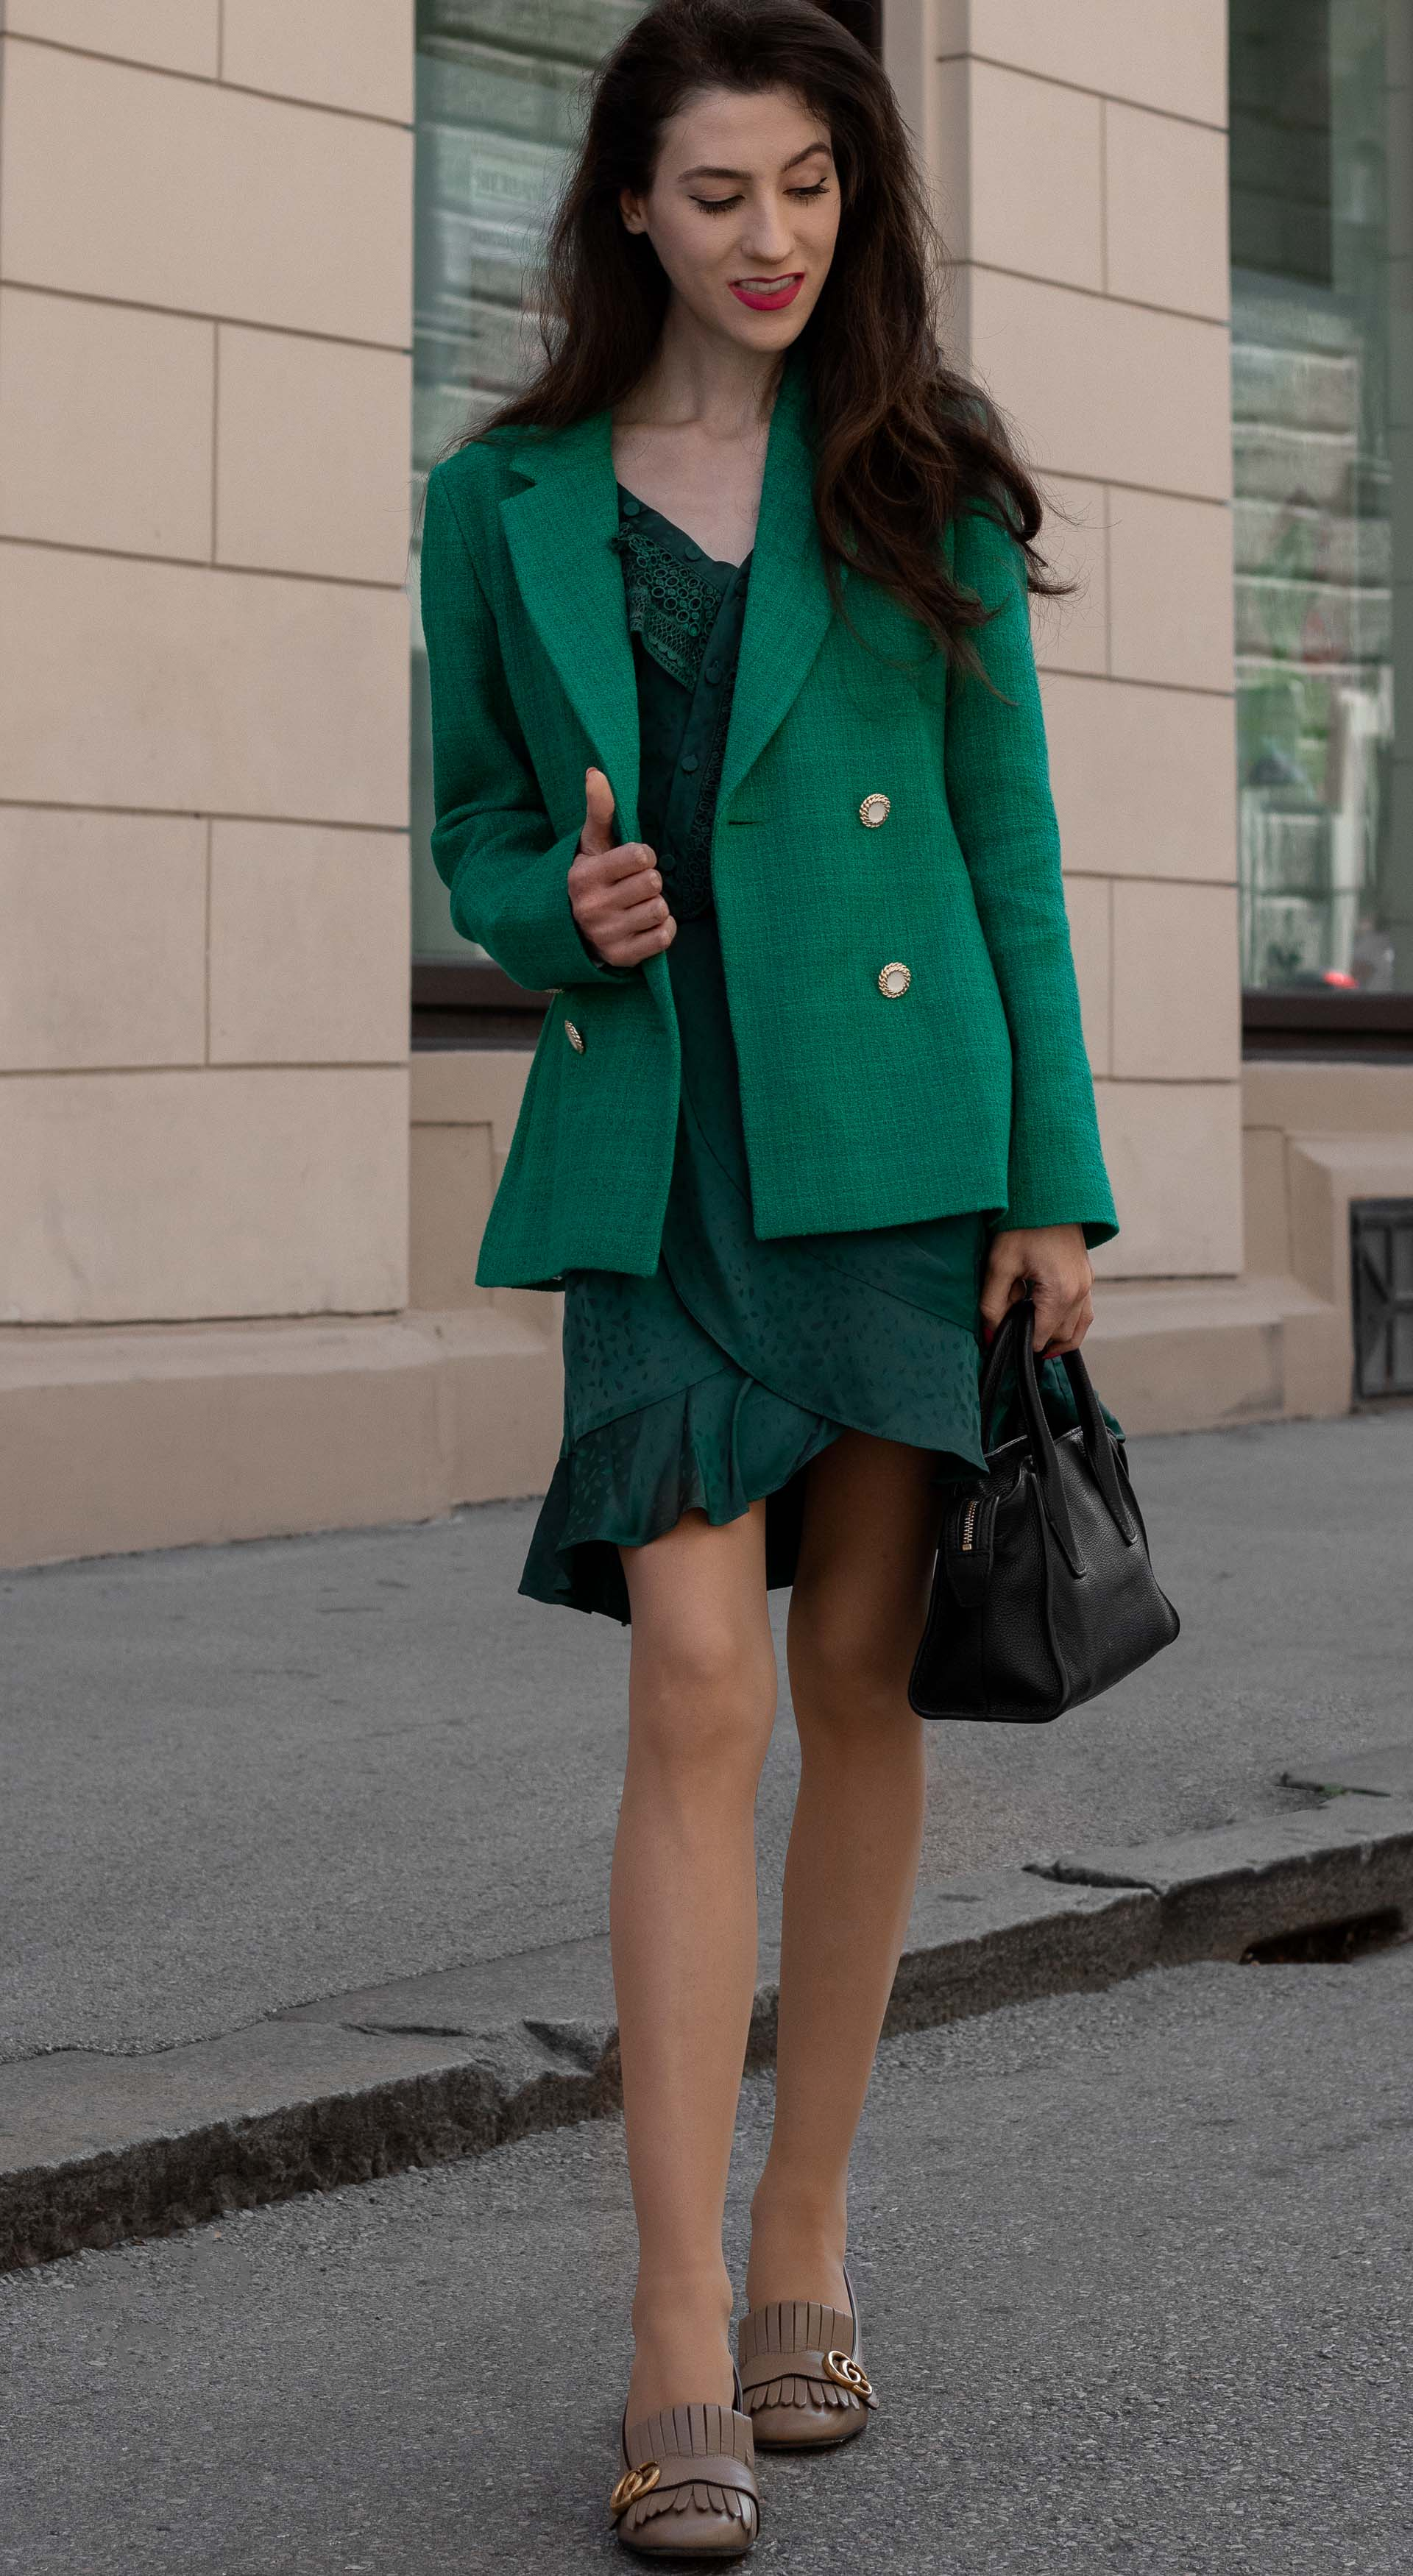 Fashion blogger Veronika Lipar of Brunette from Wall Street dressed in Sandro Paris double breasted green blazer self-portrait wrap dress Gucci heeled loafers black bag for work in fall